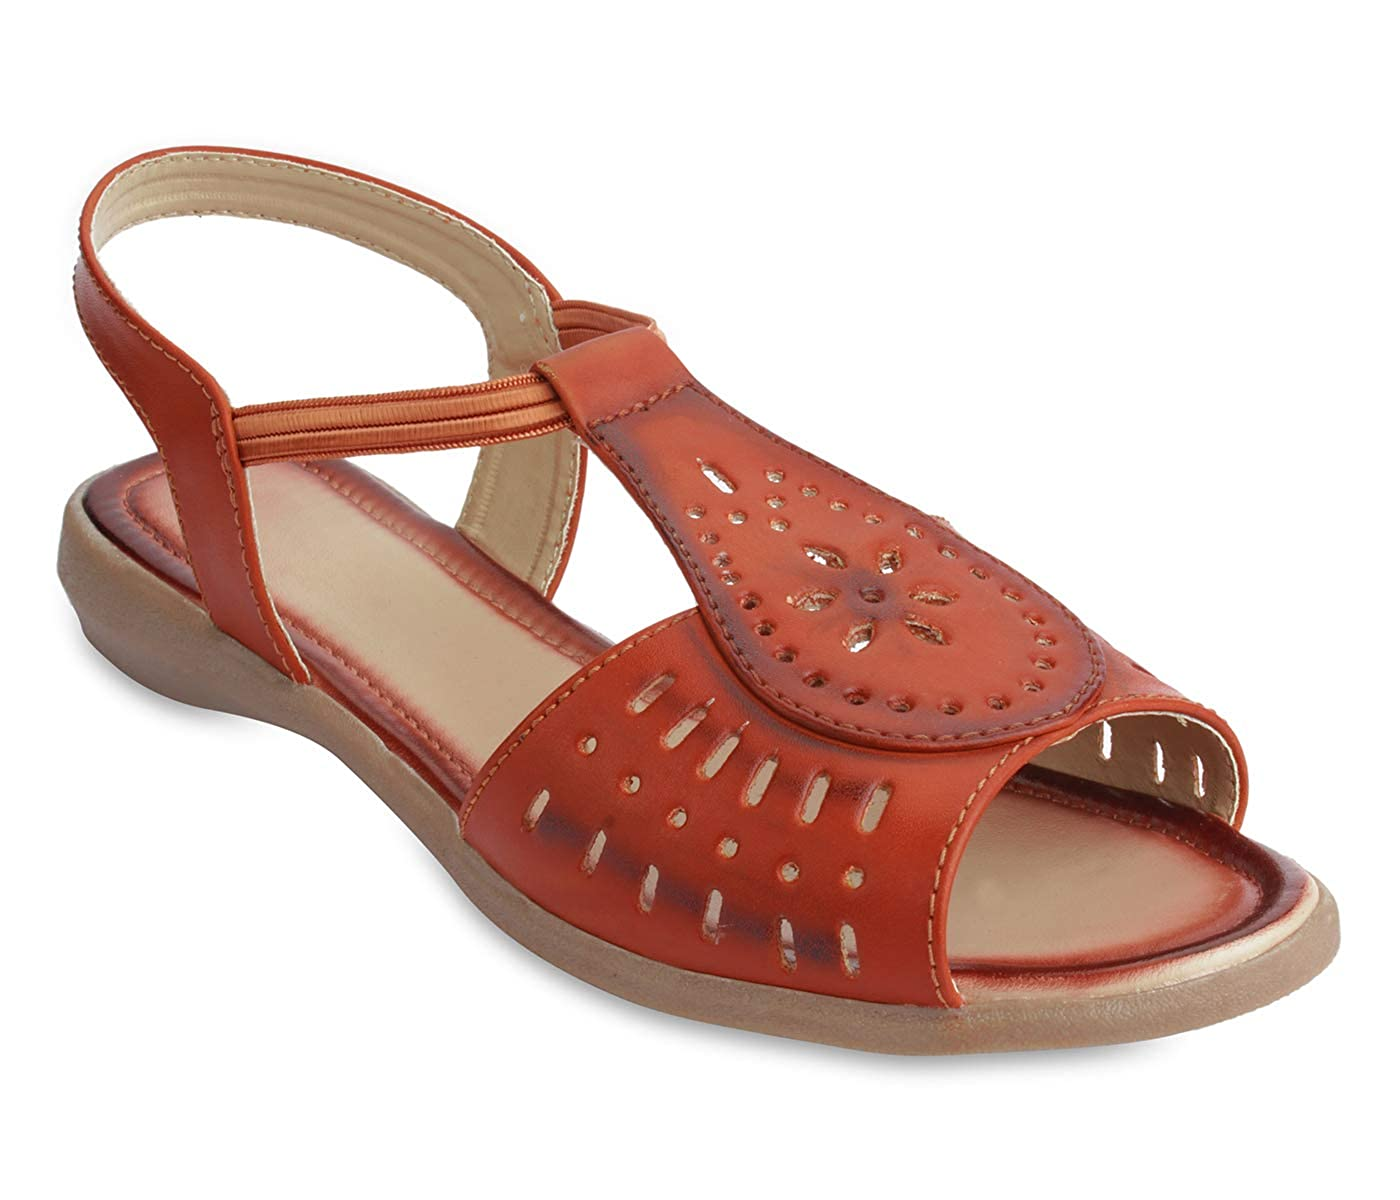 40146c8a106 peterpapa Casual Sandals for Women - Fashionable   Comfortable Sandals for  Girls  Buy Online at Low Prices in India - Amazon.in